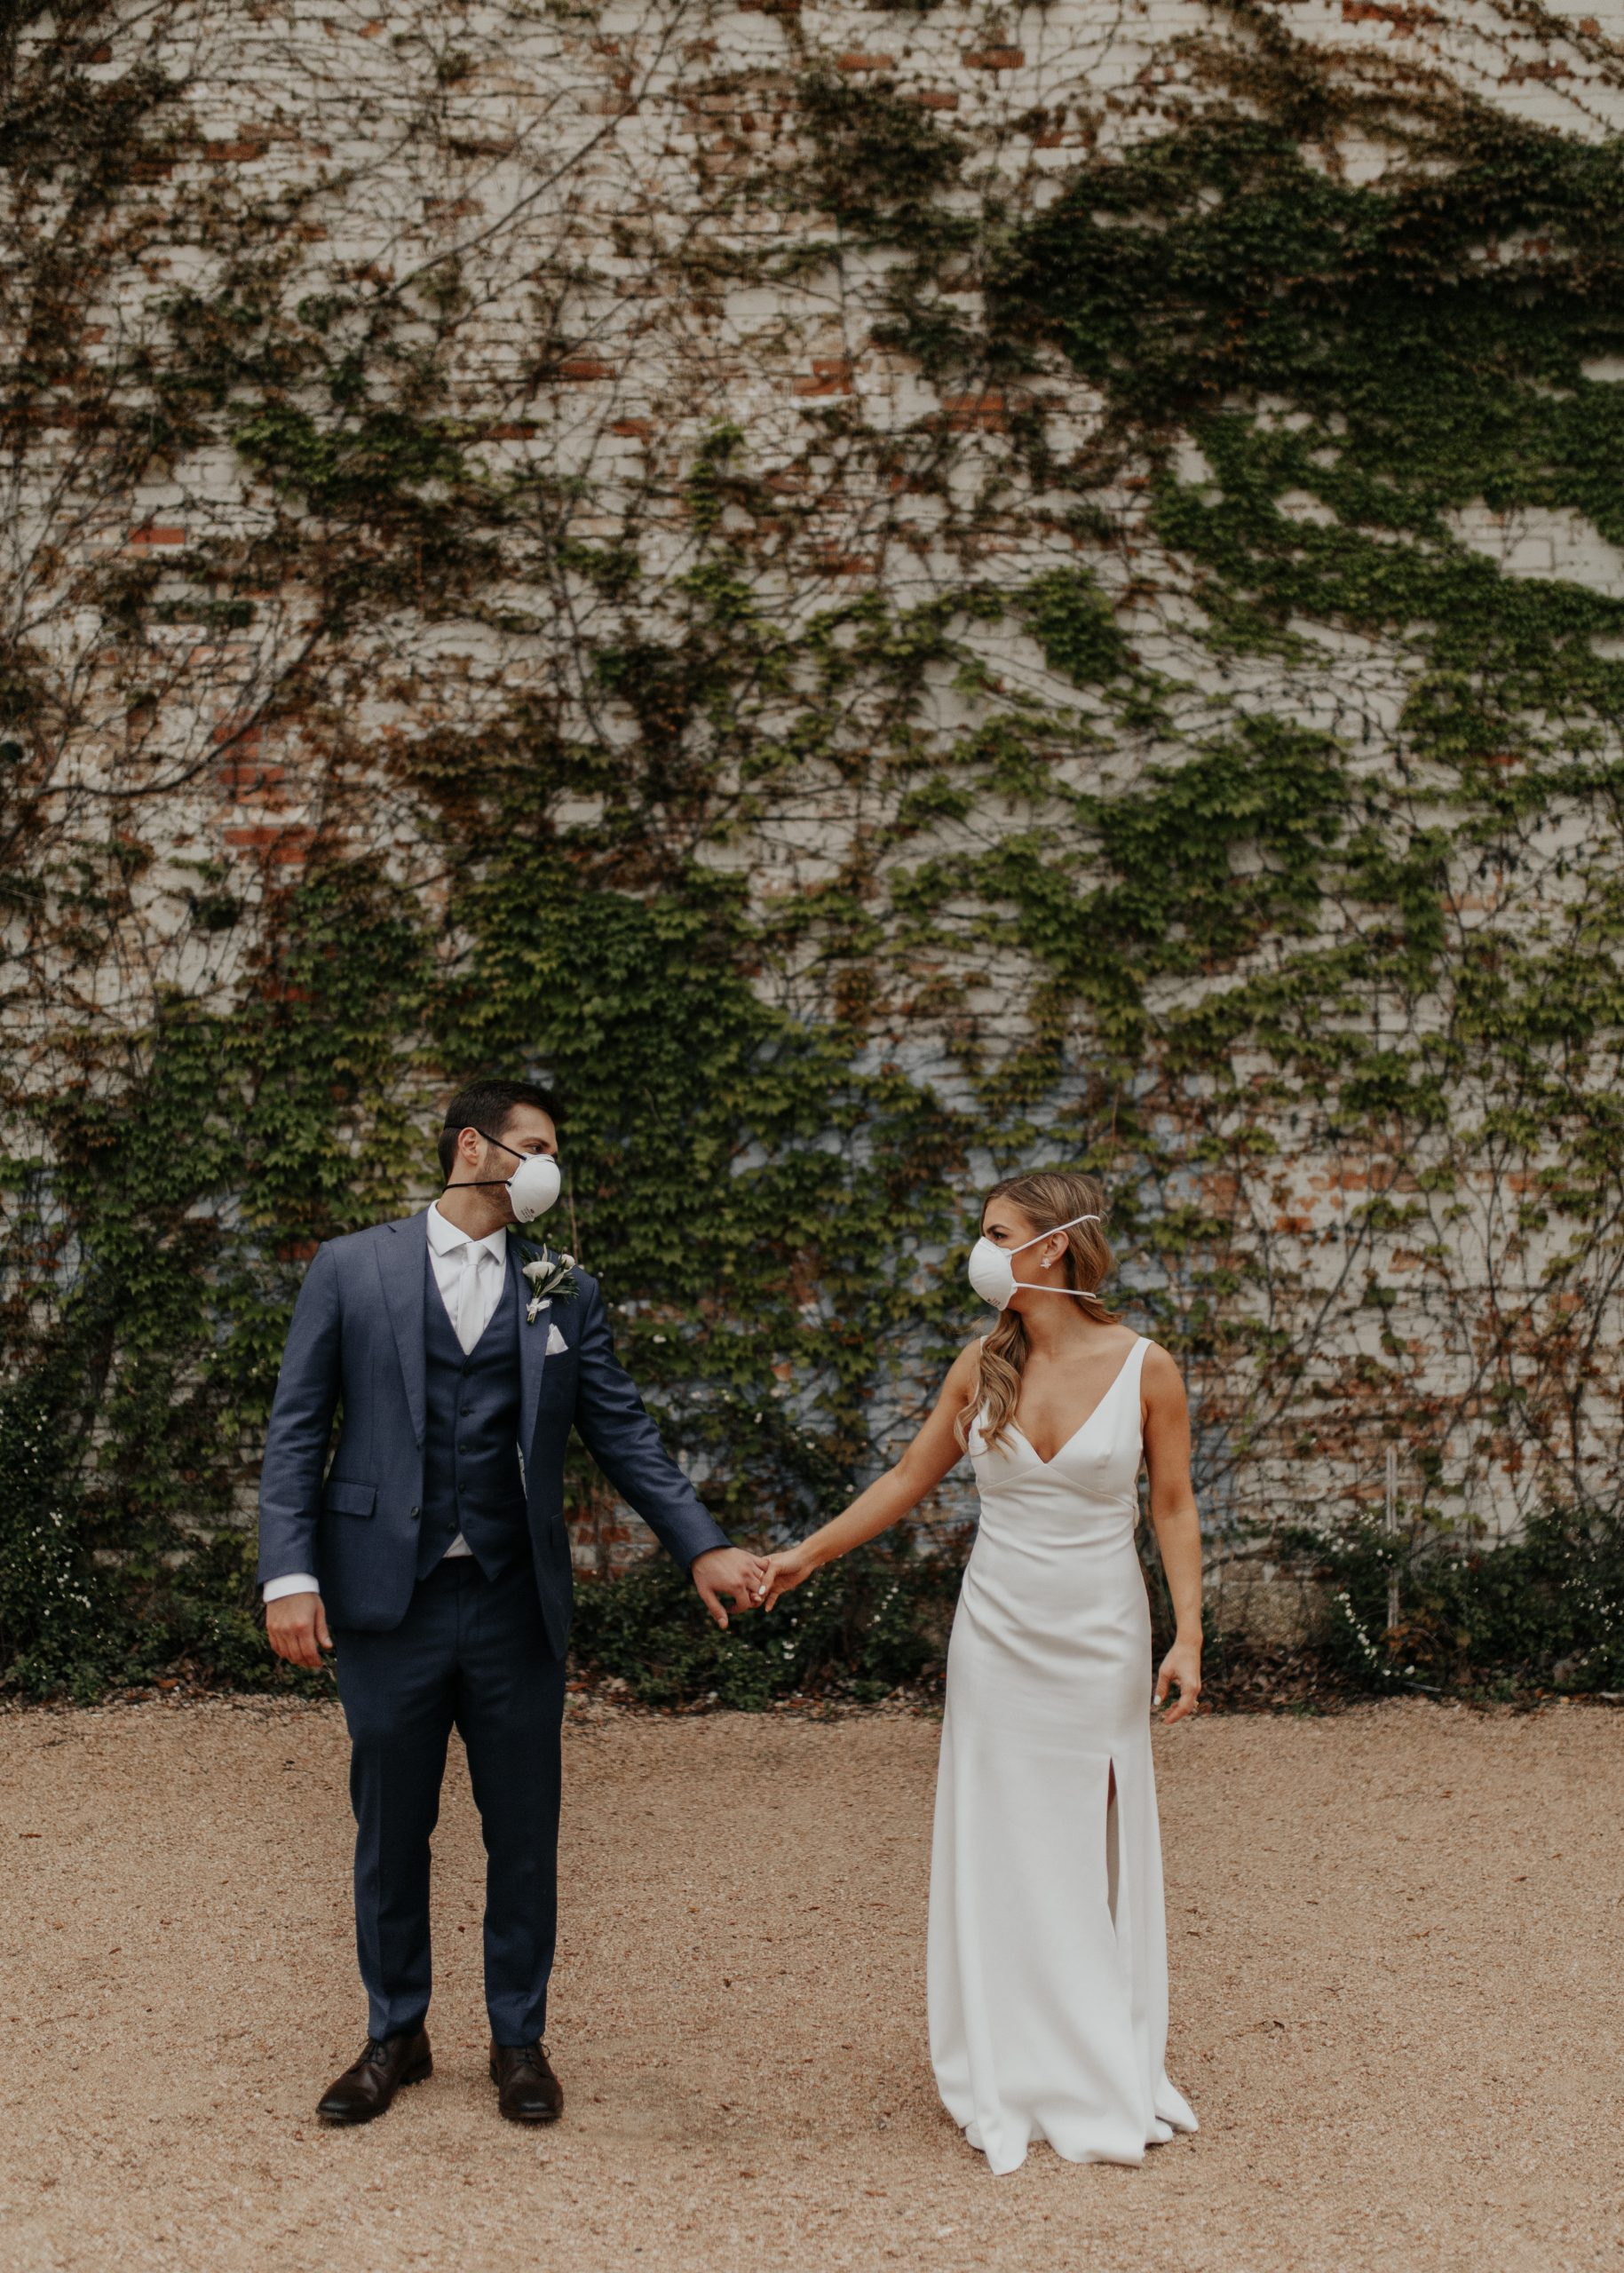 Incorporating Face Masks Into Your Wedding